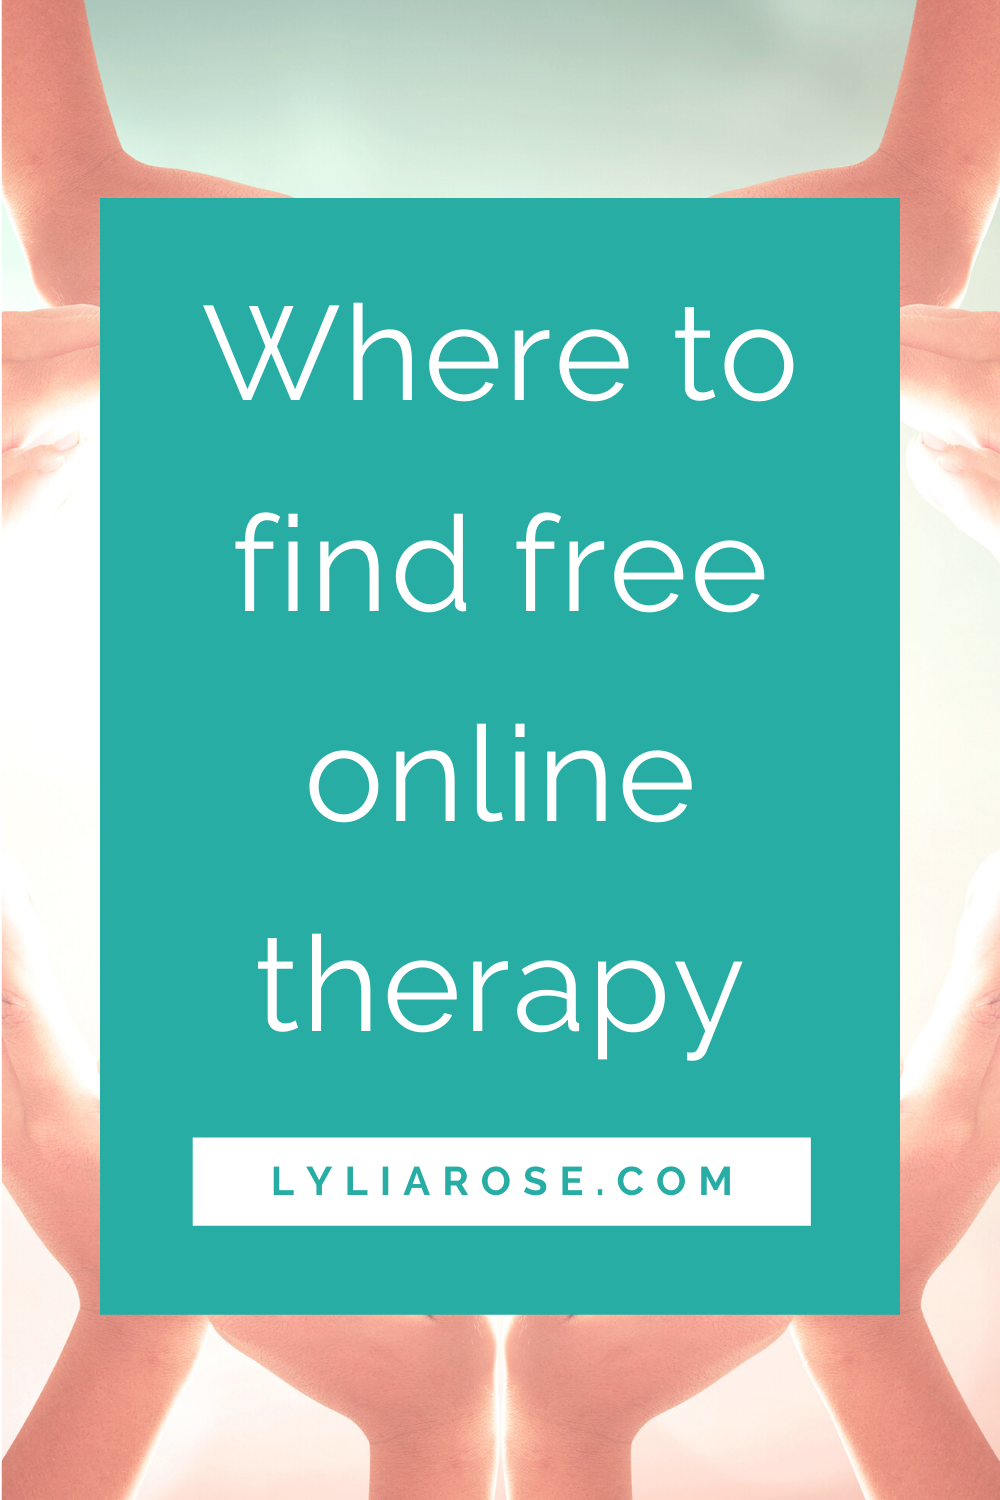 Where to find free online therapy